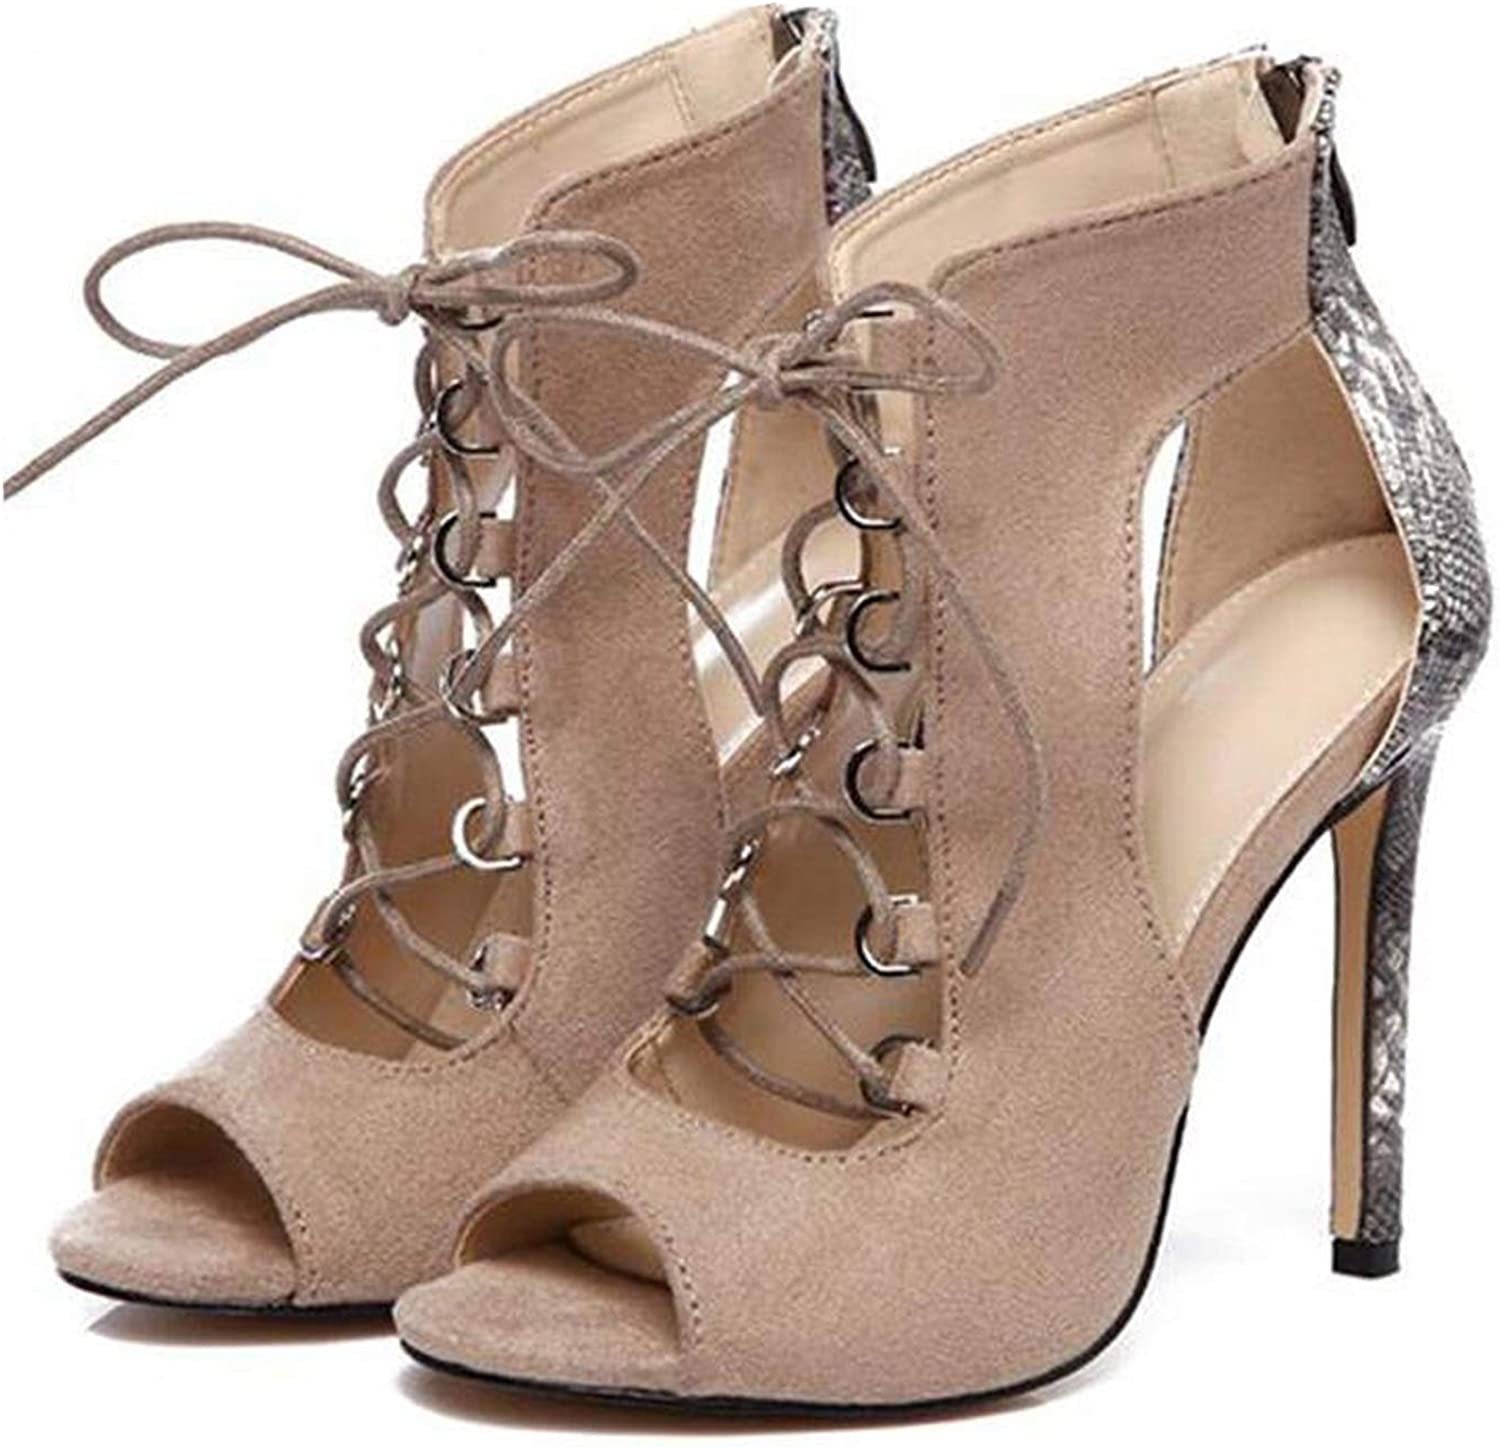 Woman shoes Snake Grain Splicing Strap Sandals Show Rome High Heels,Apricot,5